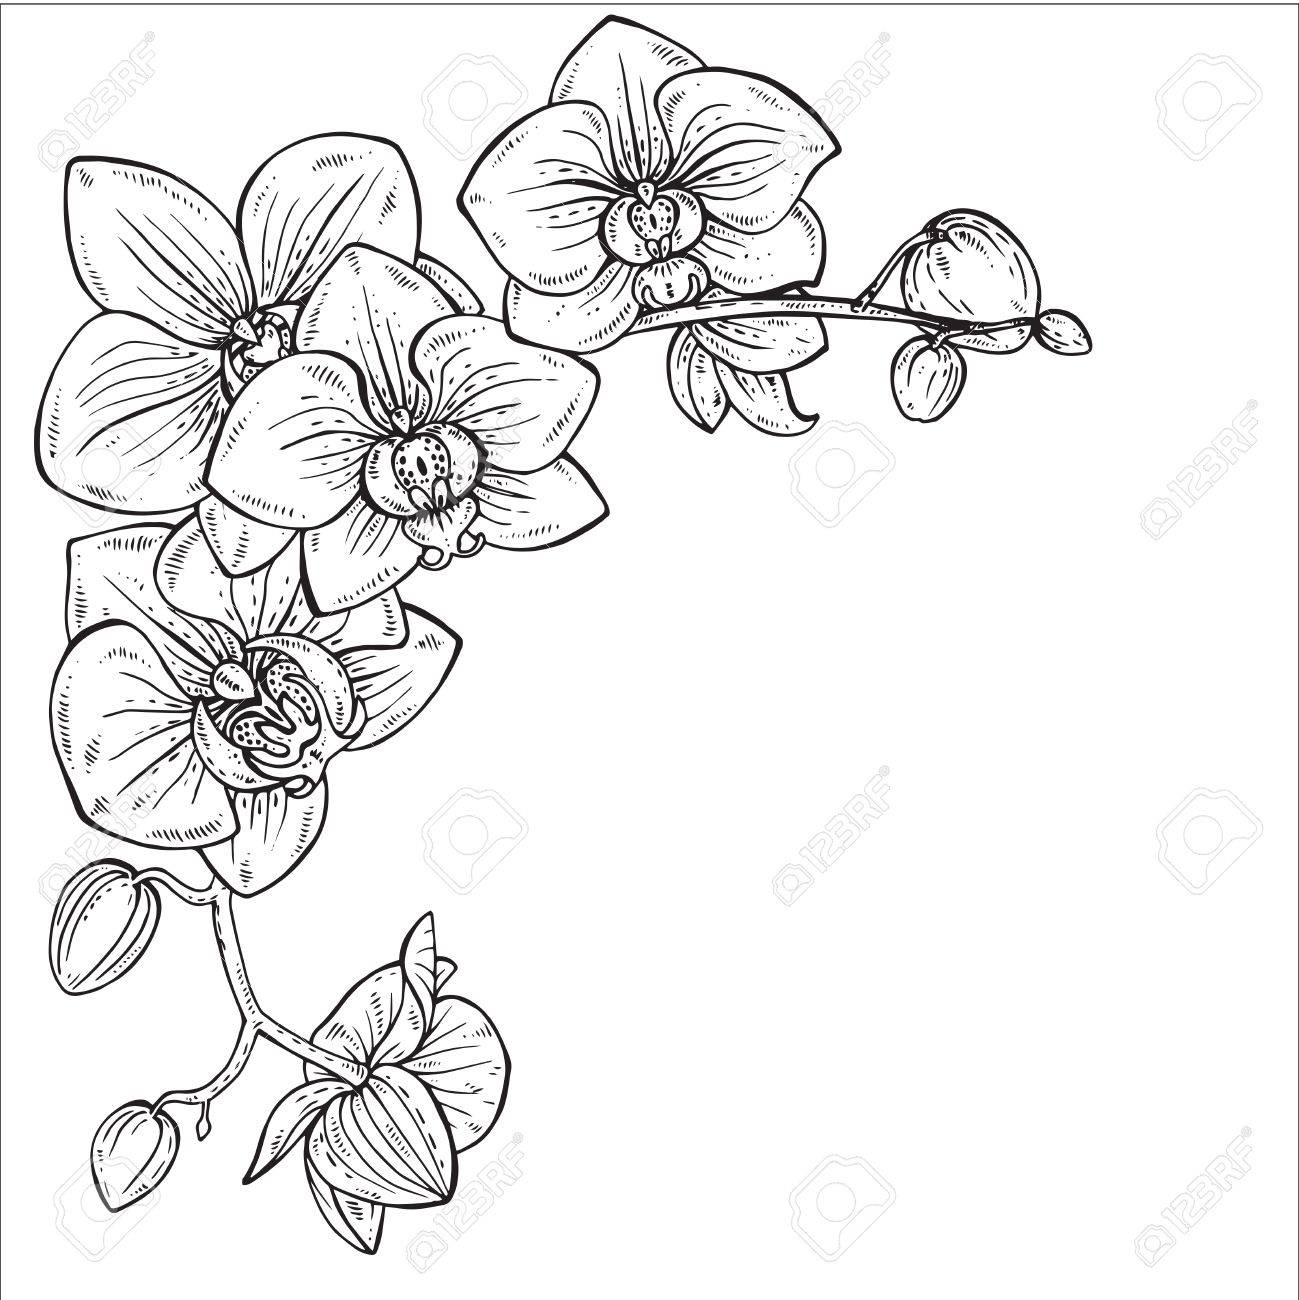 Belle Monochrome Floral Background Avec Des Branches D Orchidees